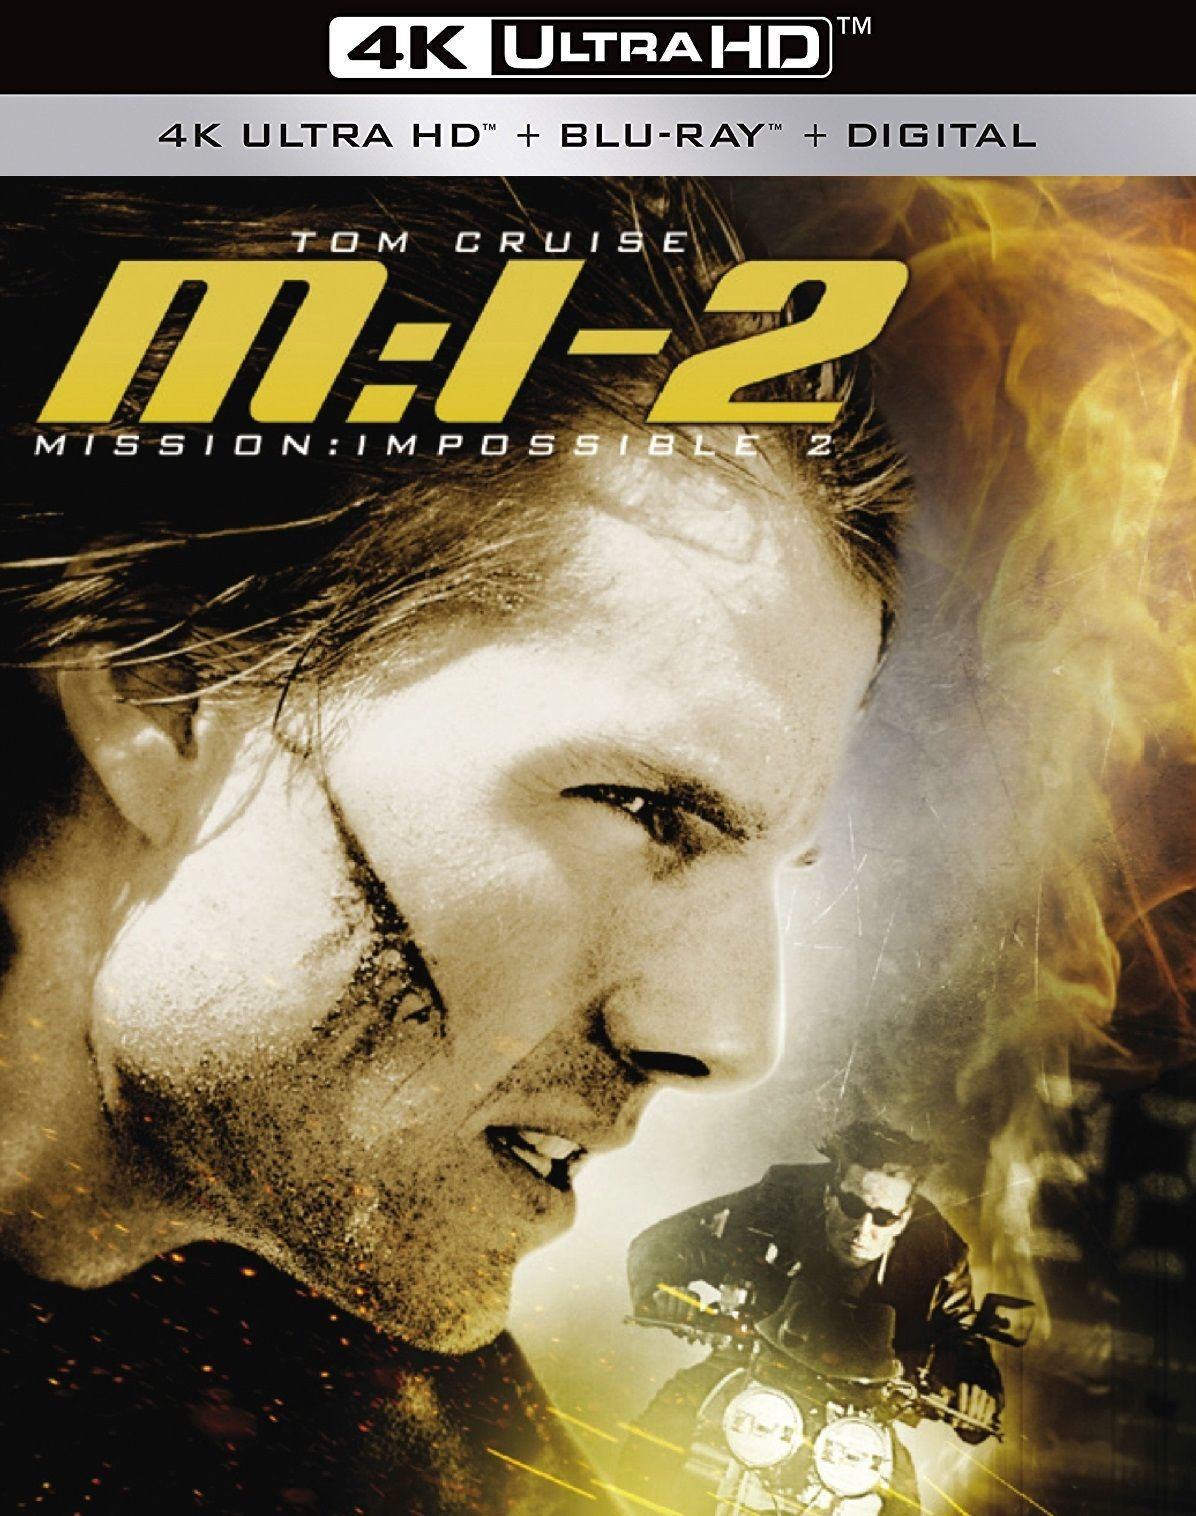 Mission Impossible Ii 4k 2000 Ultra Hd Blu Ray With Images